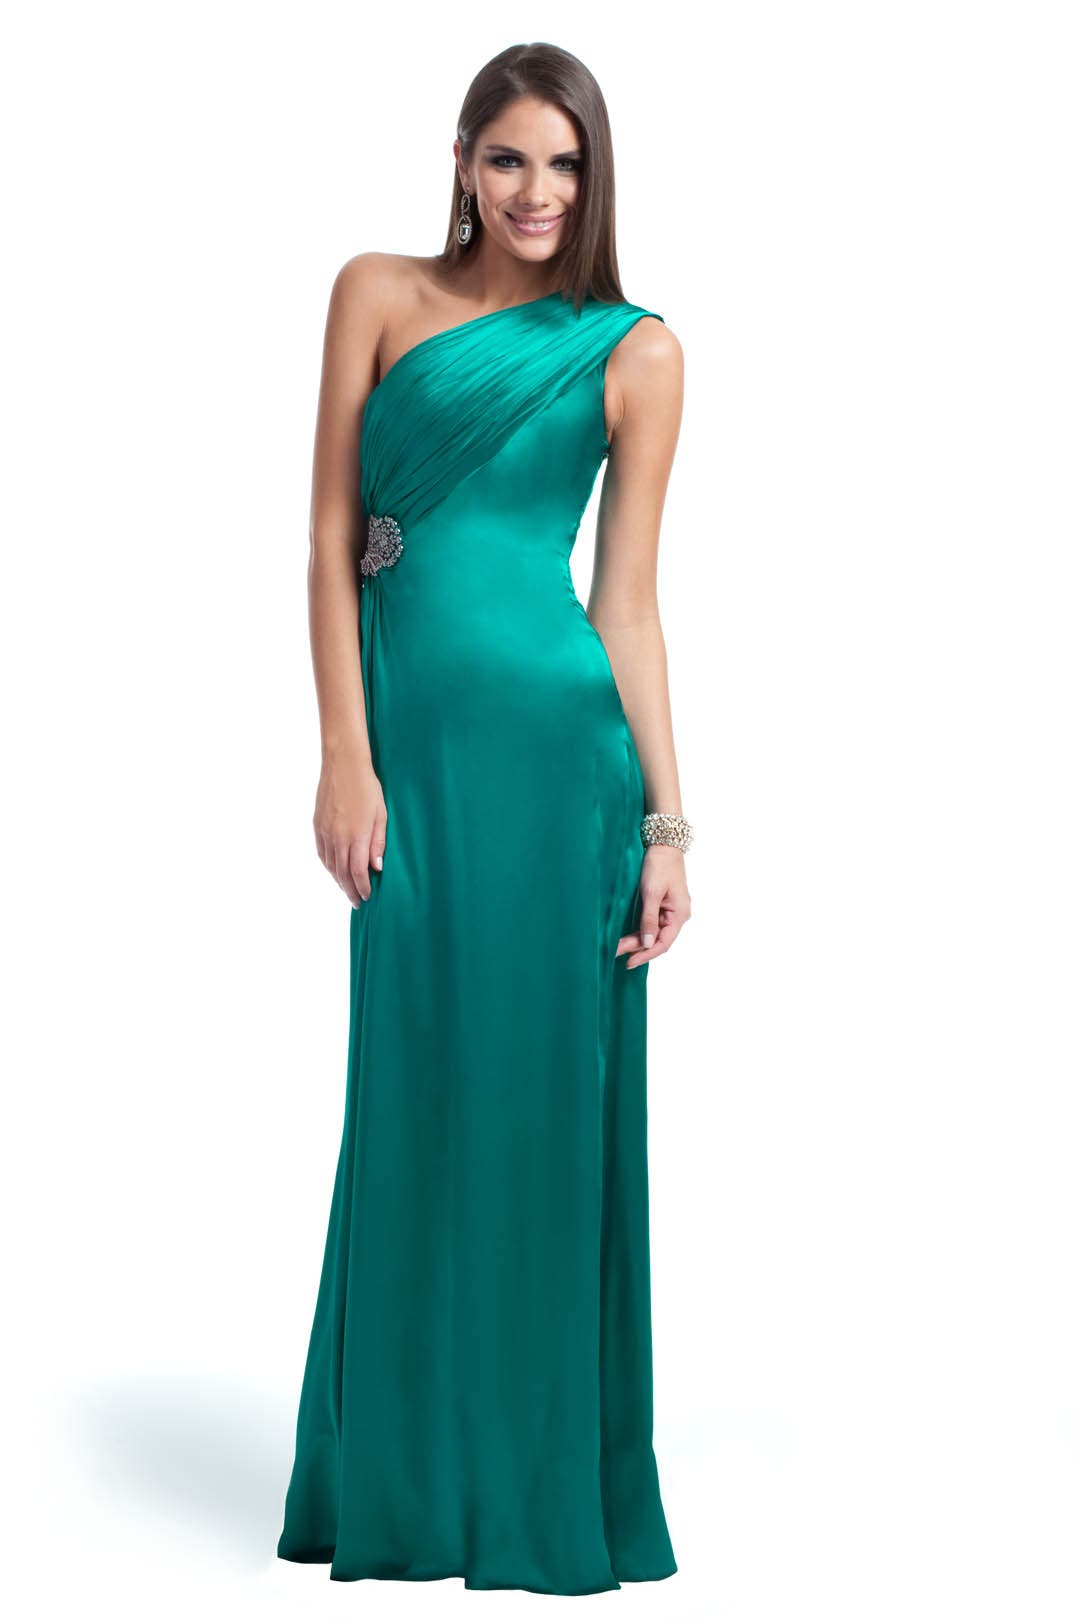 Gem of the Sea Gown by Carlos Miele